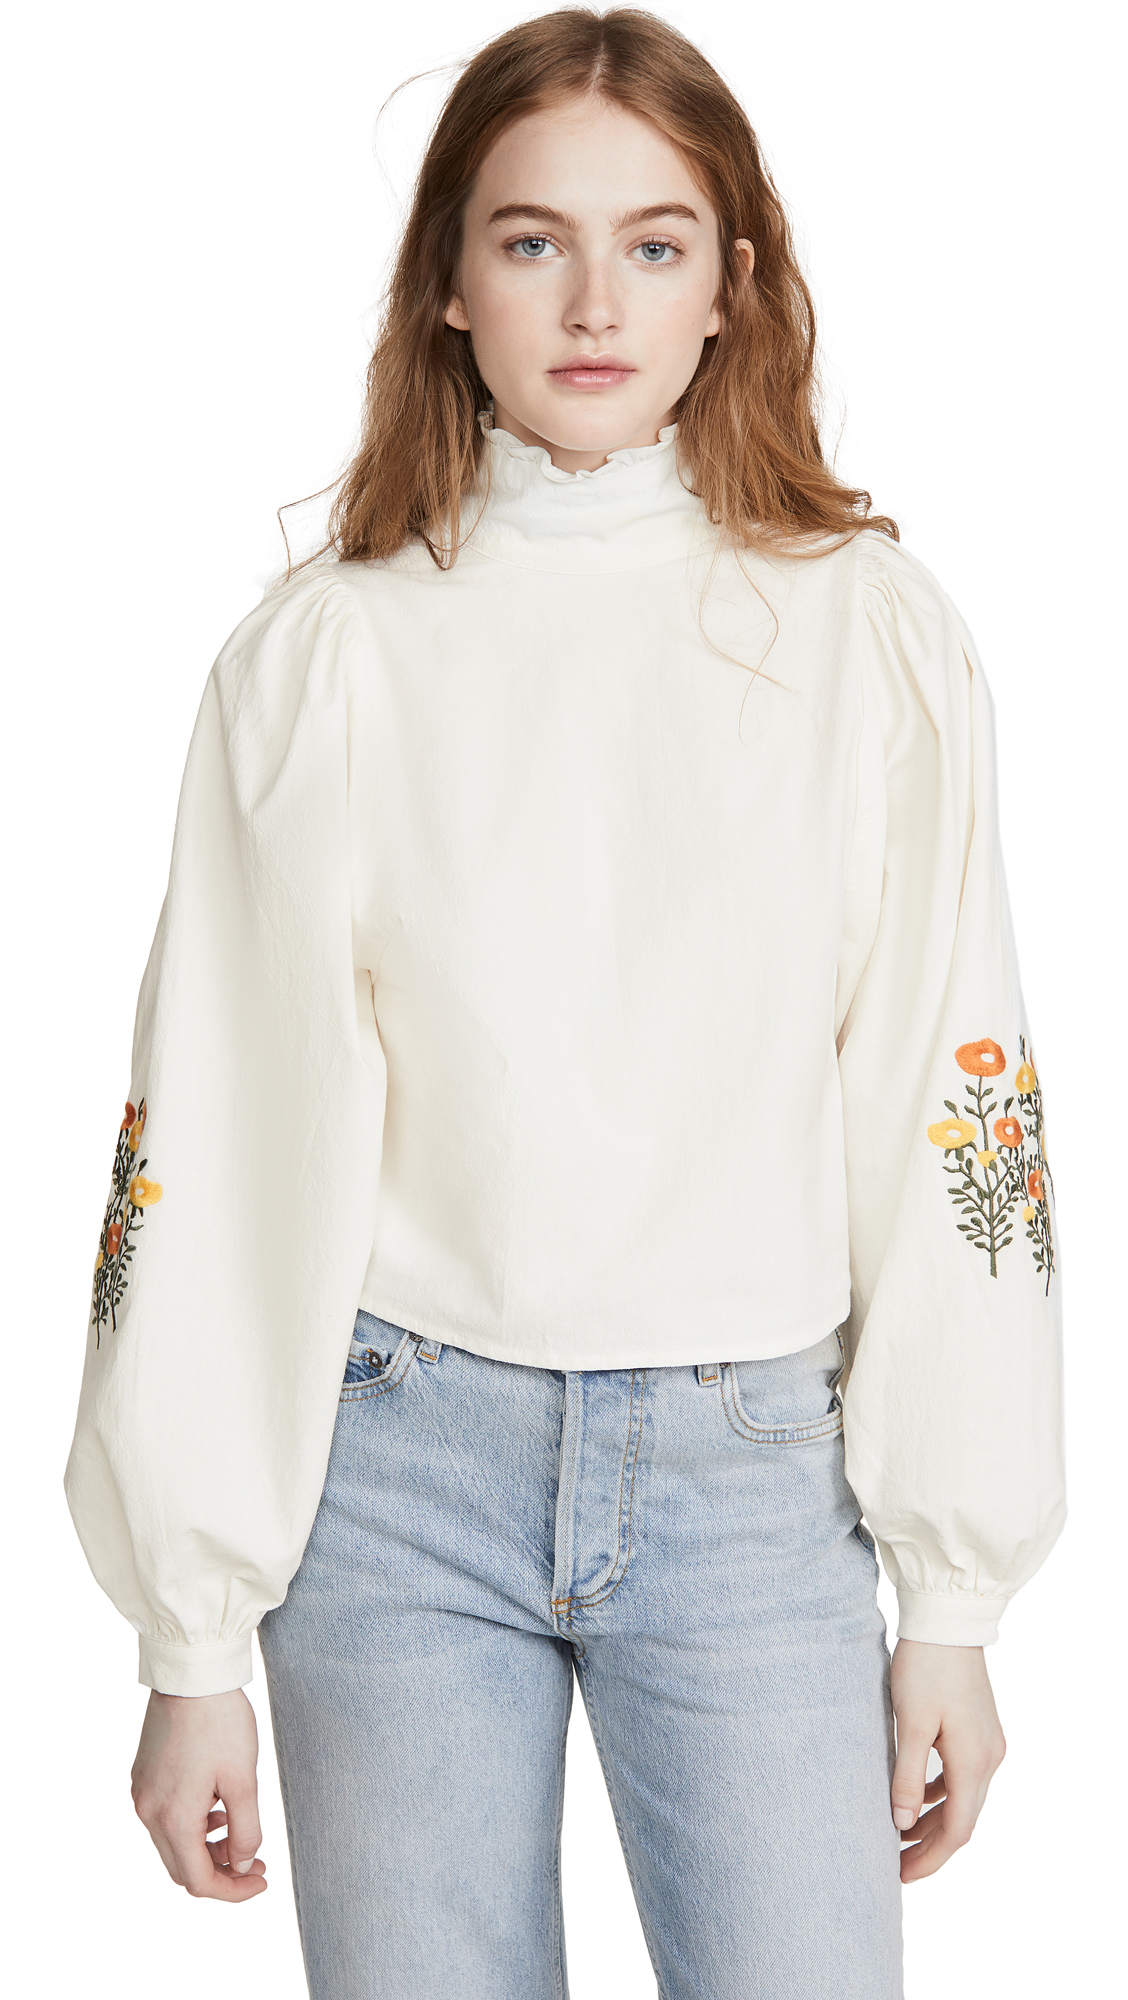 Photo of Meadows Carnation Top - shop Meadows Tops, Blouses online